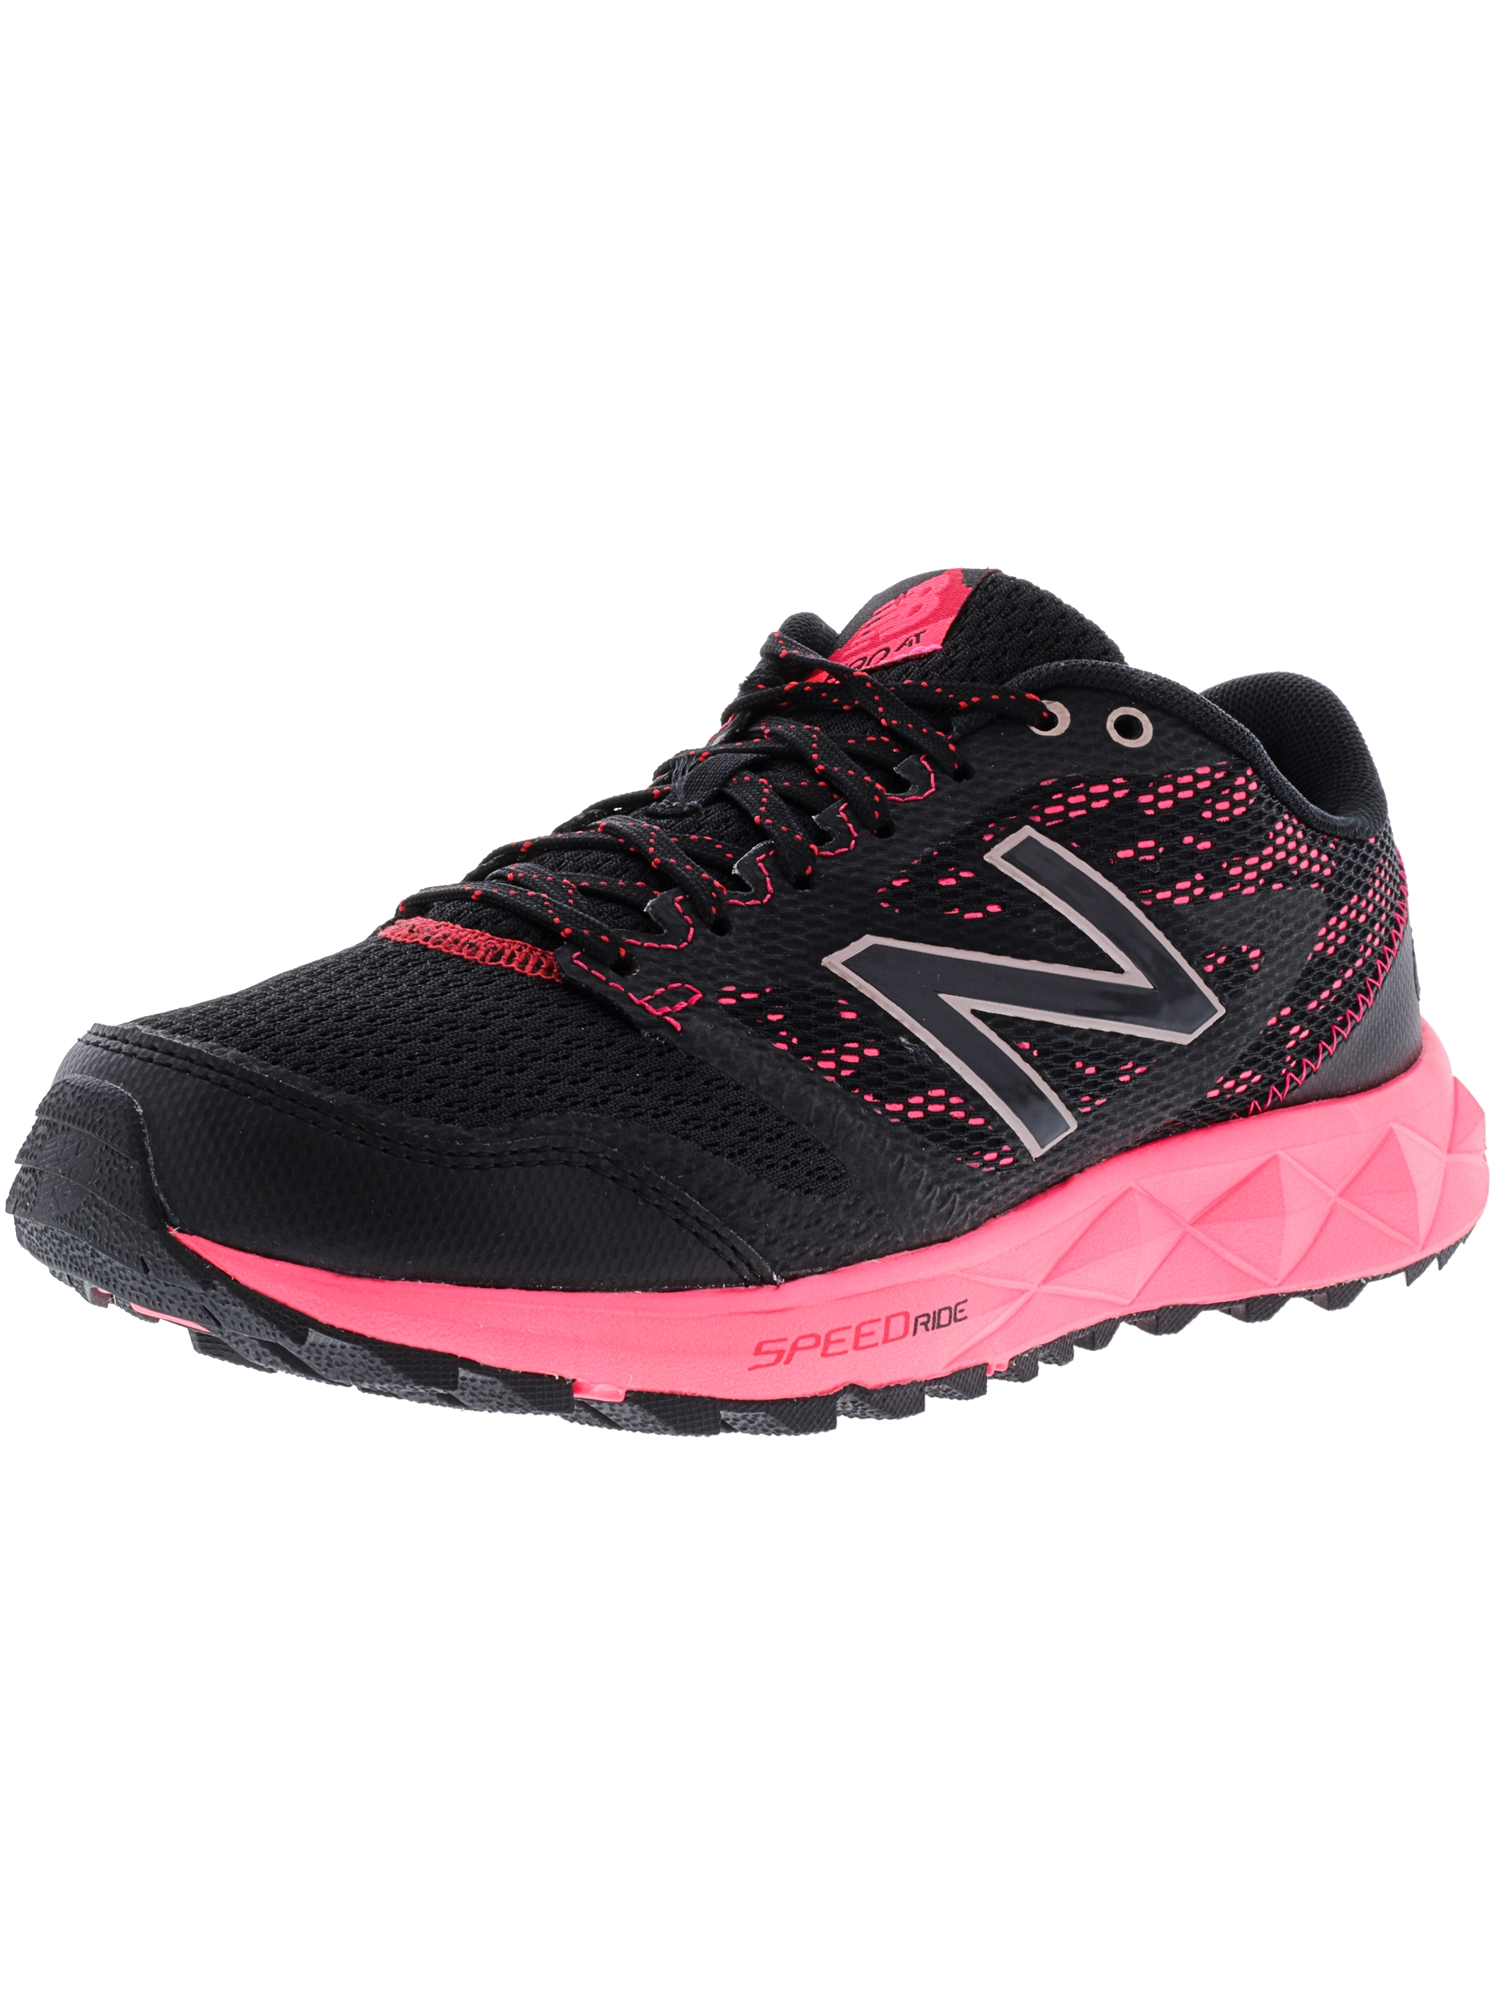 New Balance Women's Wt590 Lb2 Ankle-High Trail Runner - 6W